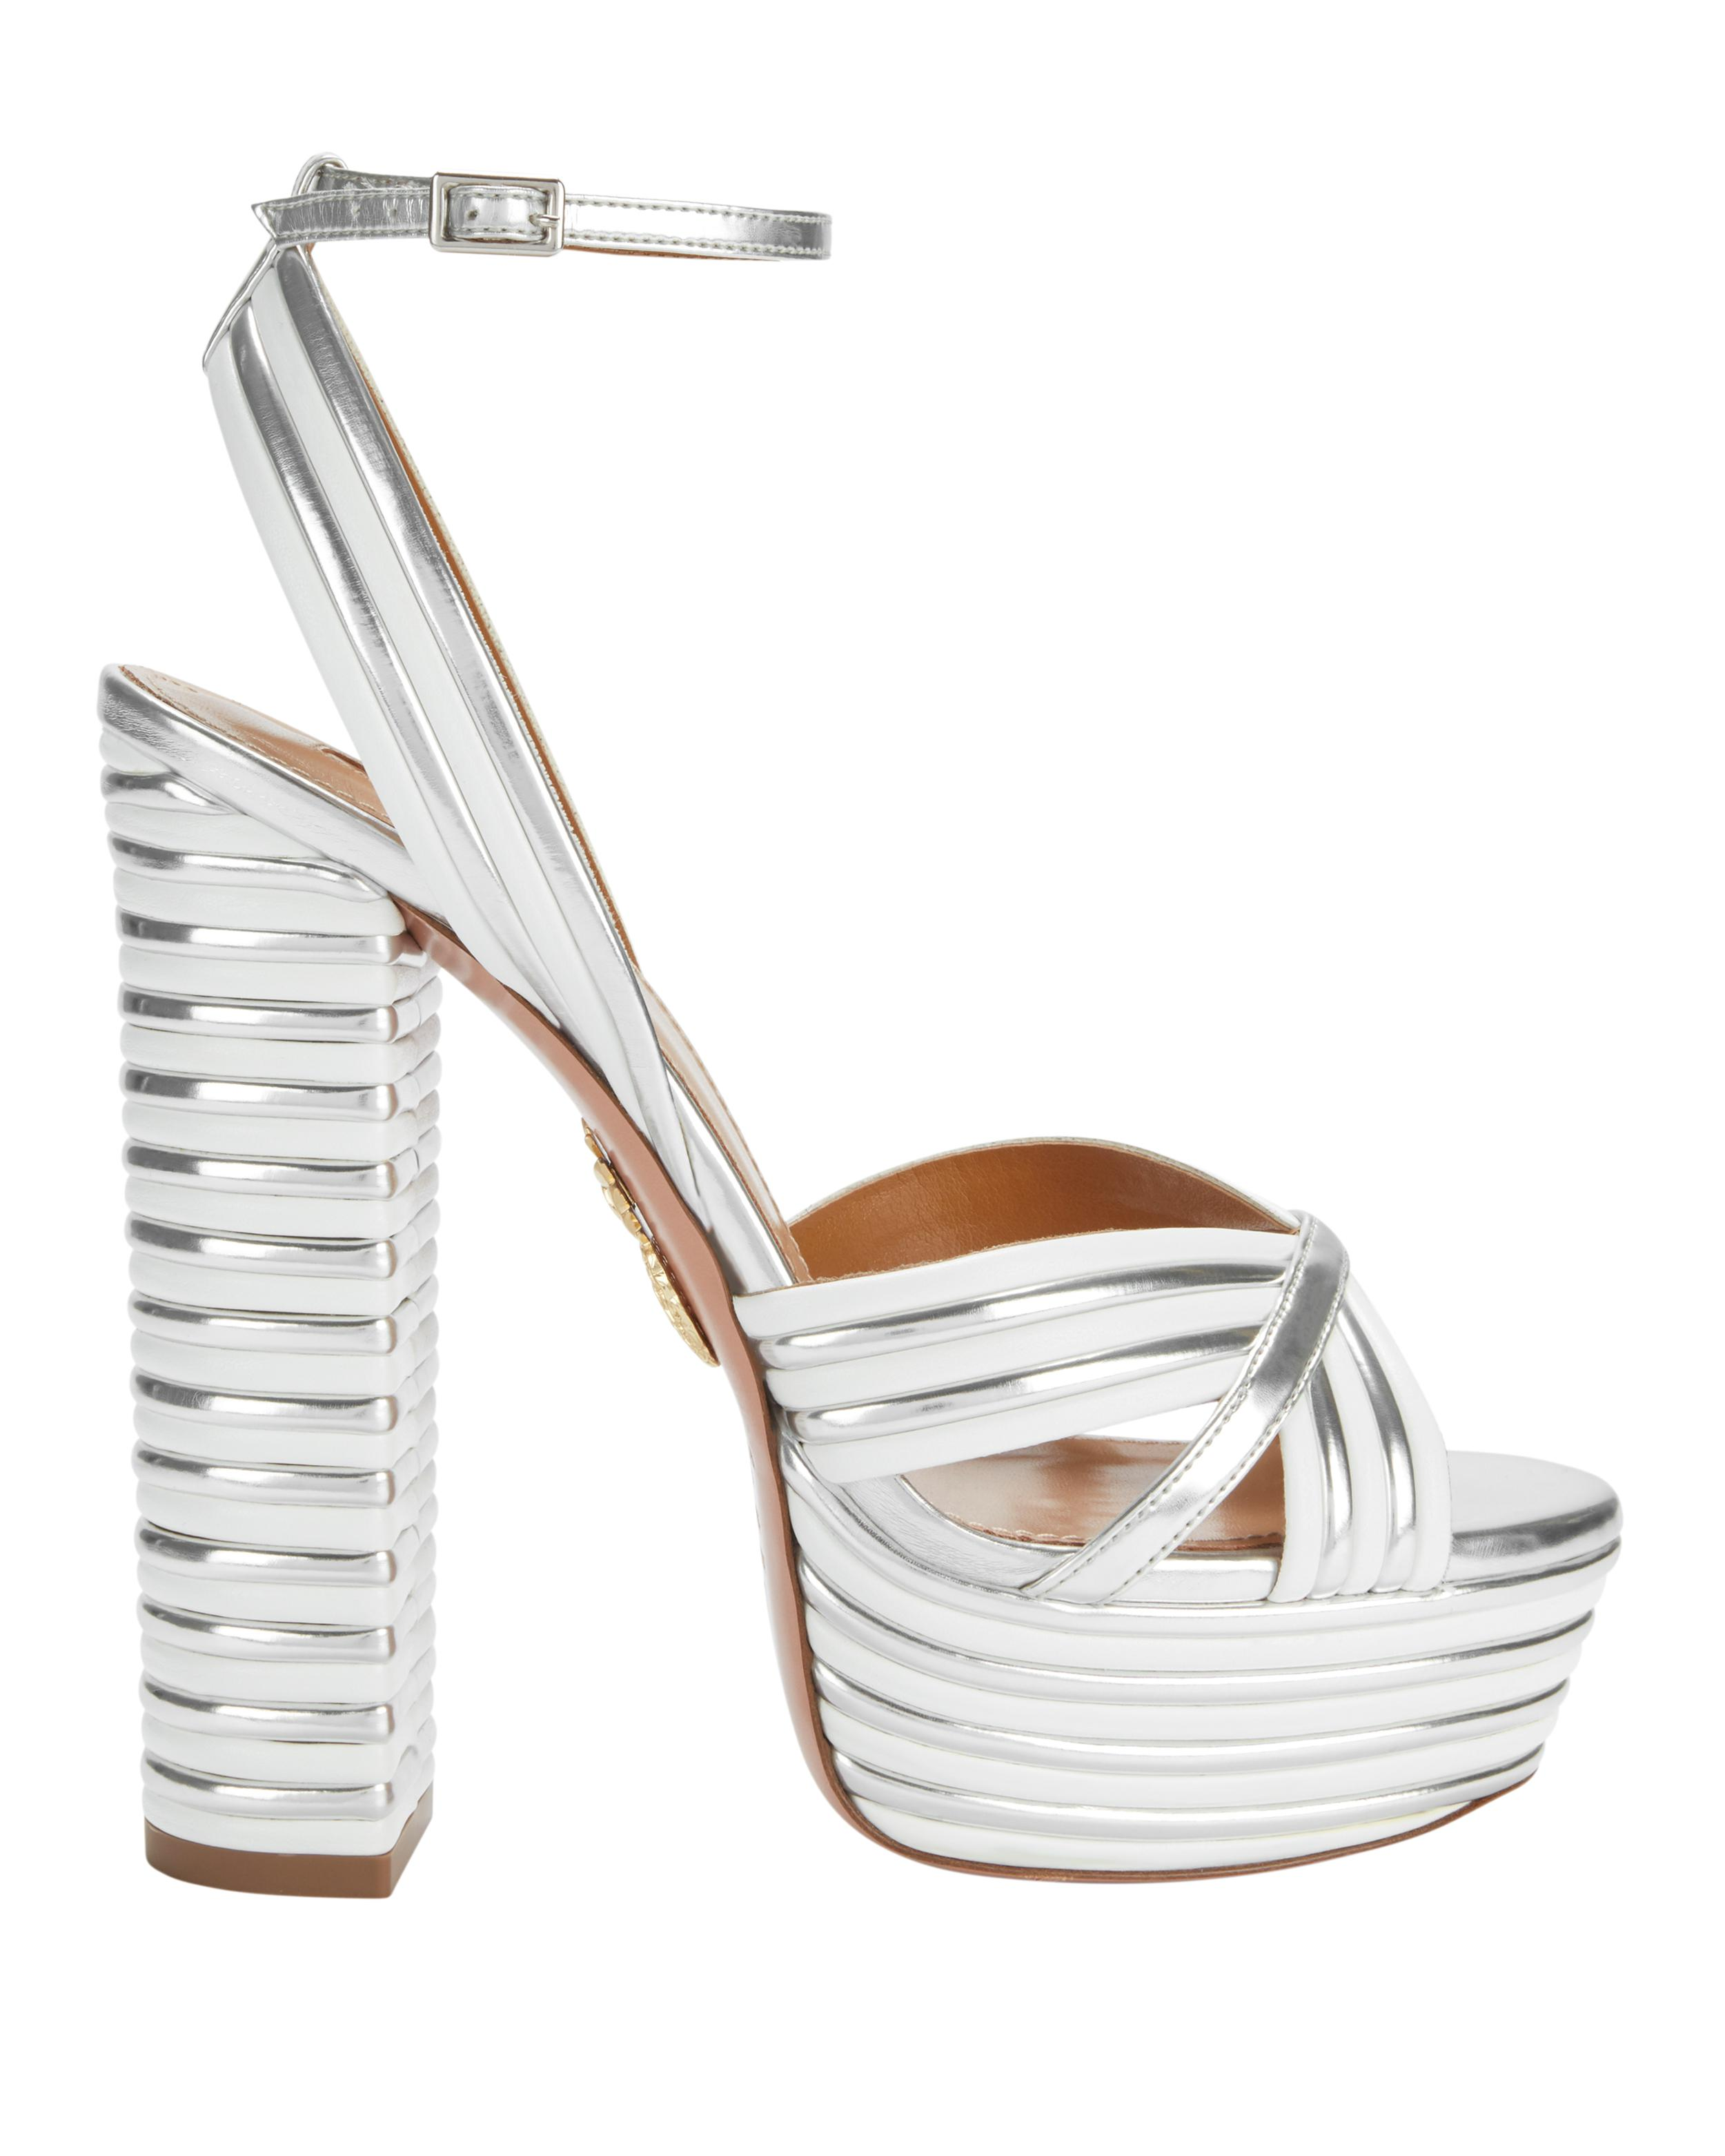 4314466b575 Lyst - Aquazzura Sundance Silver Platform Sandals in Metallic